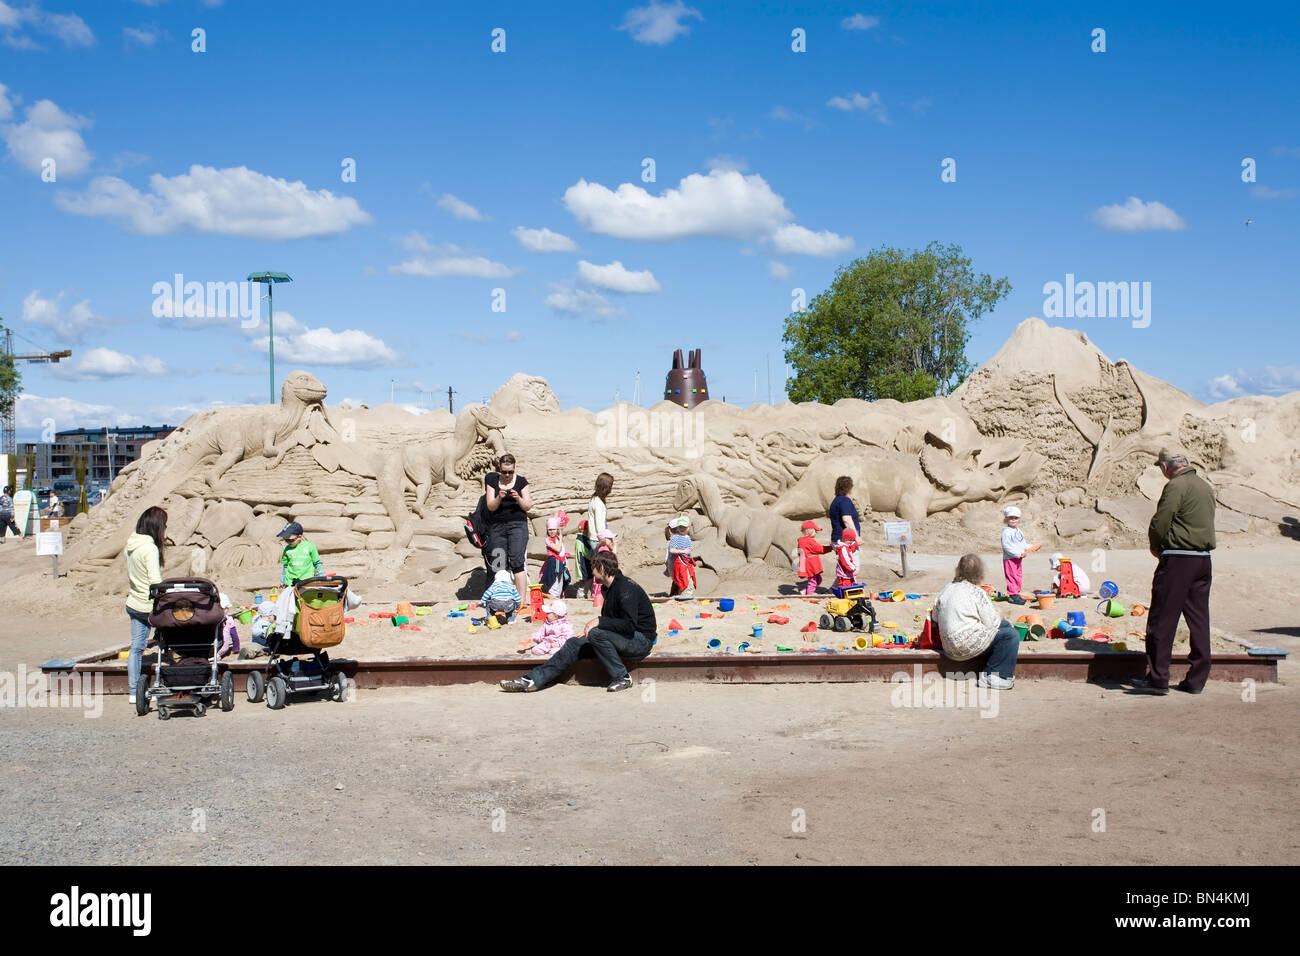 Sandbox with families in Lappeenranta Finland Europe - Stock Image